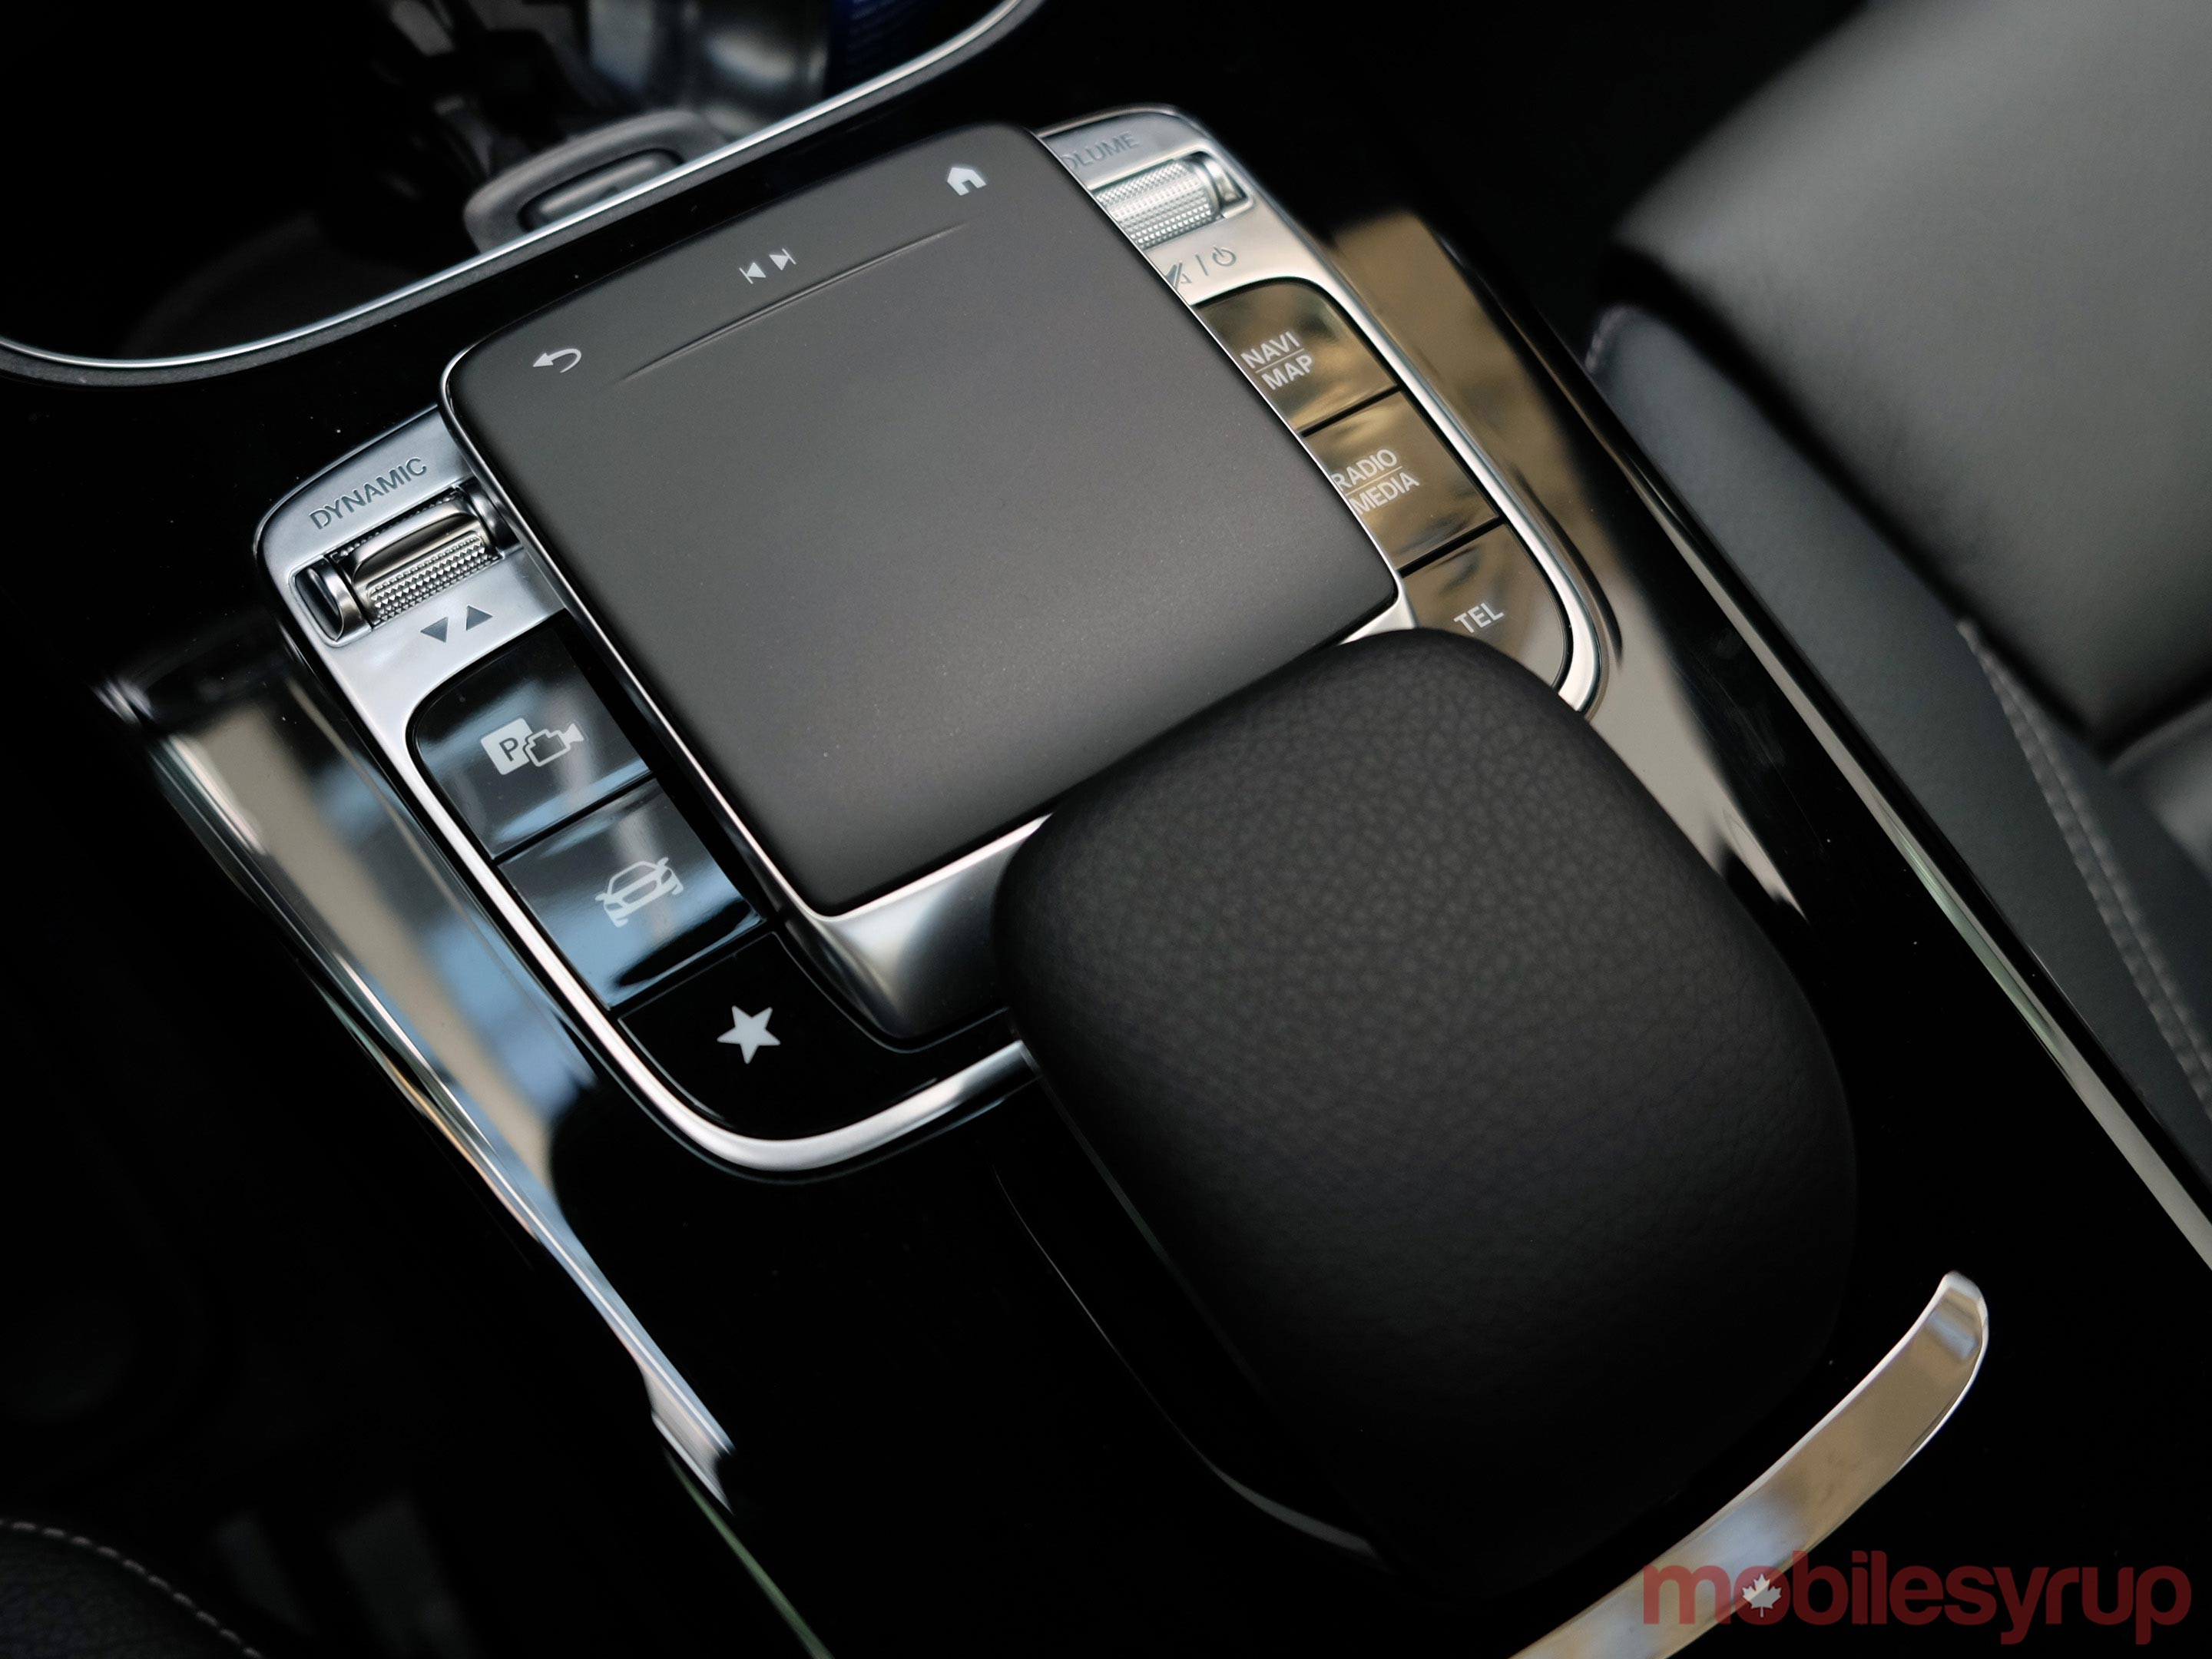 Mercedes-Benz MBUX Infotainment System Hands-on: Feeling